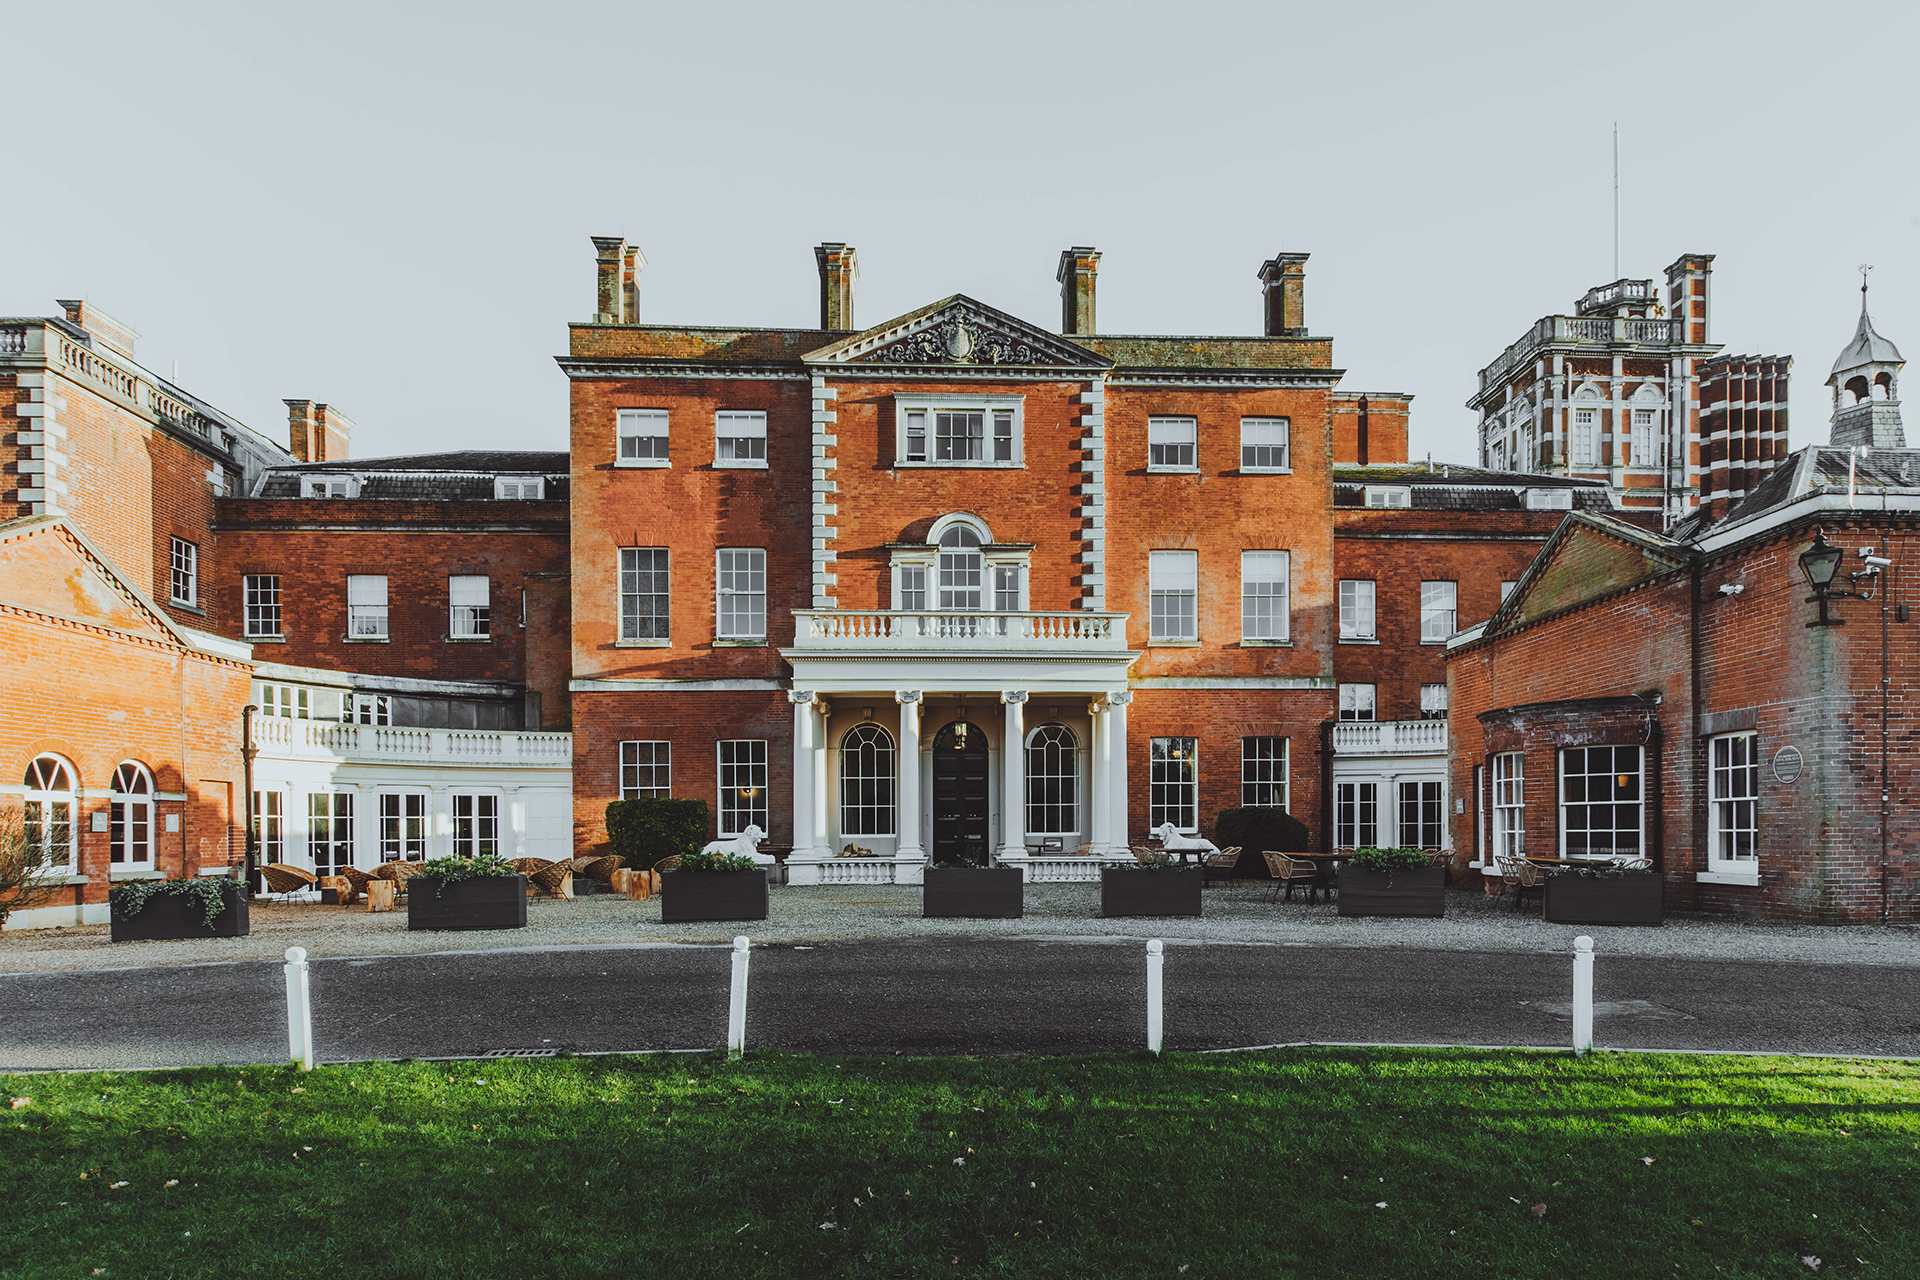 Birch is housed in a Grade II-listed Georgian mansion. Photo by Adam Firman.